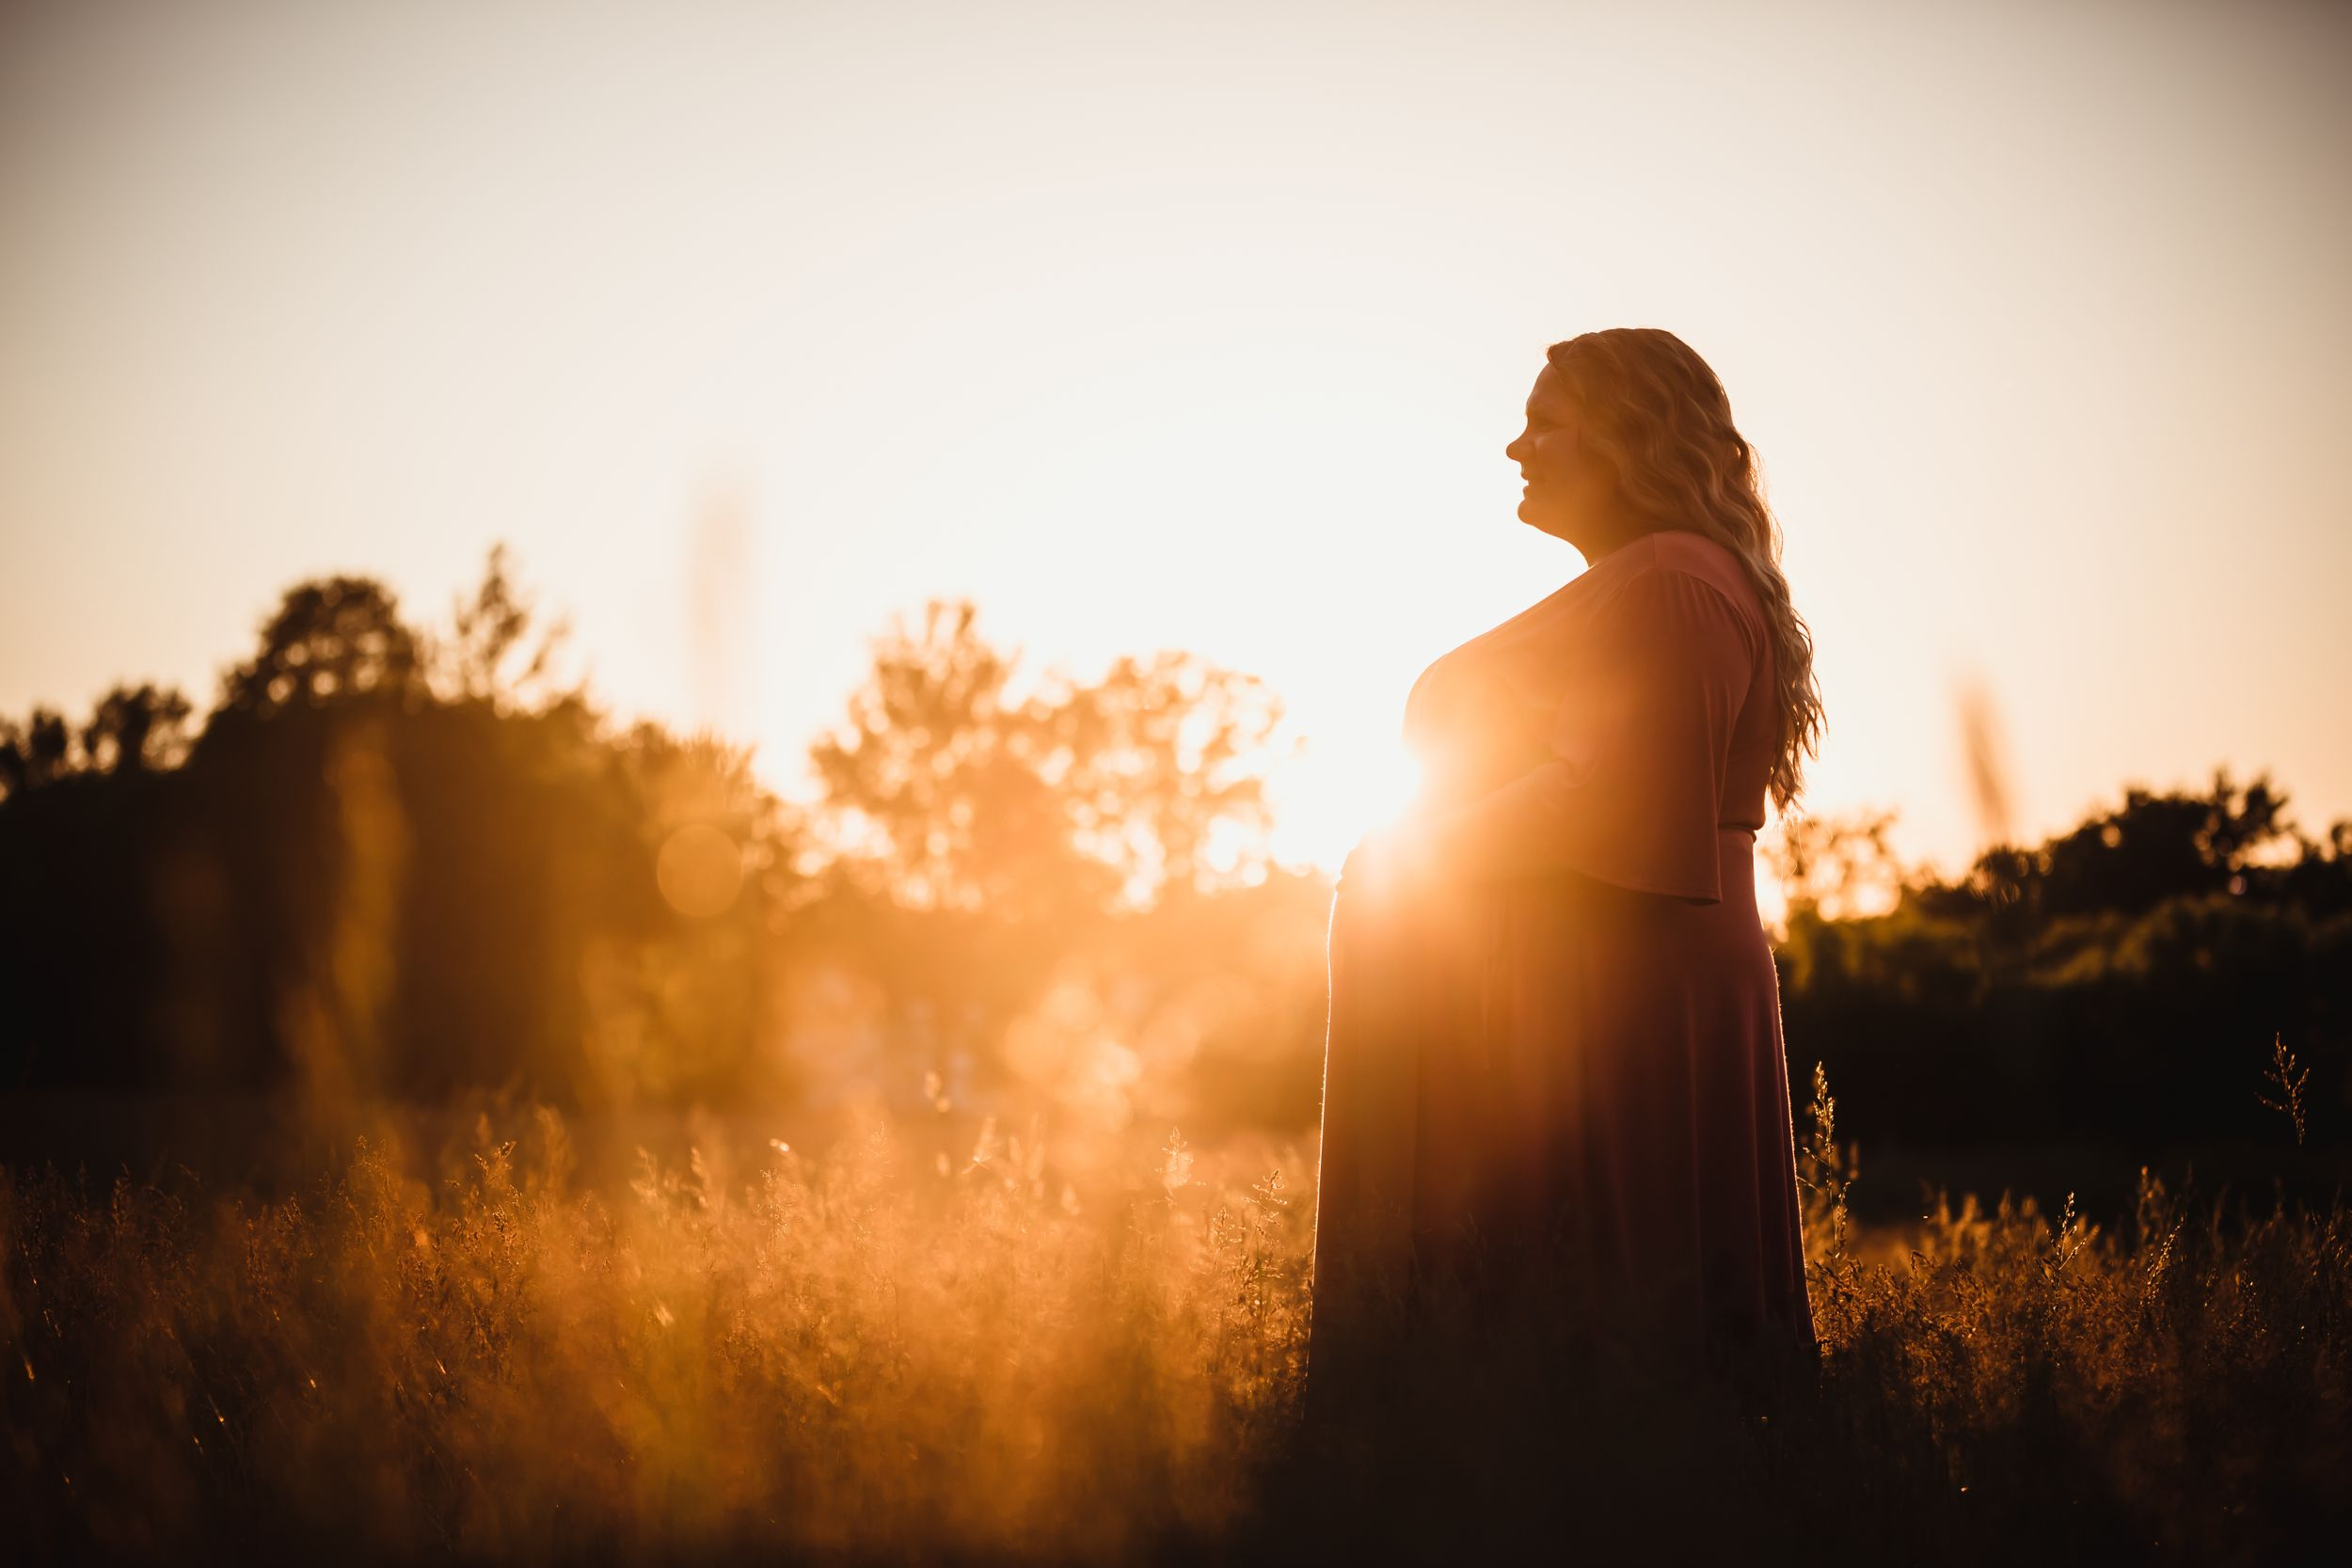 Pregnant mom in a long dress standing in a field with golden sunset light.